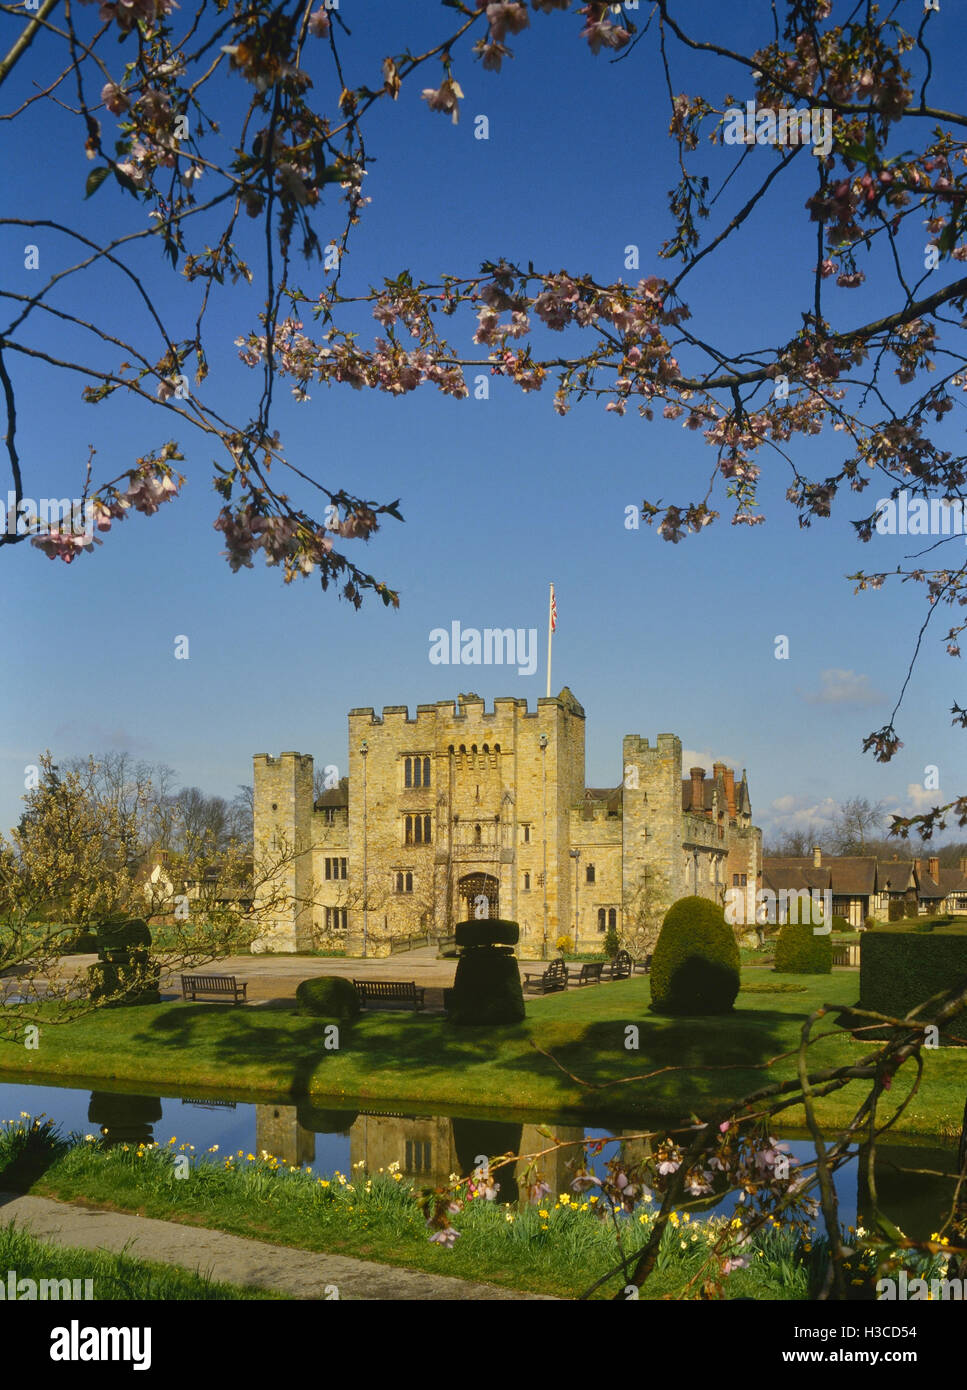 Hever Castle, Kent. England. UK Stockbild